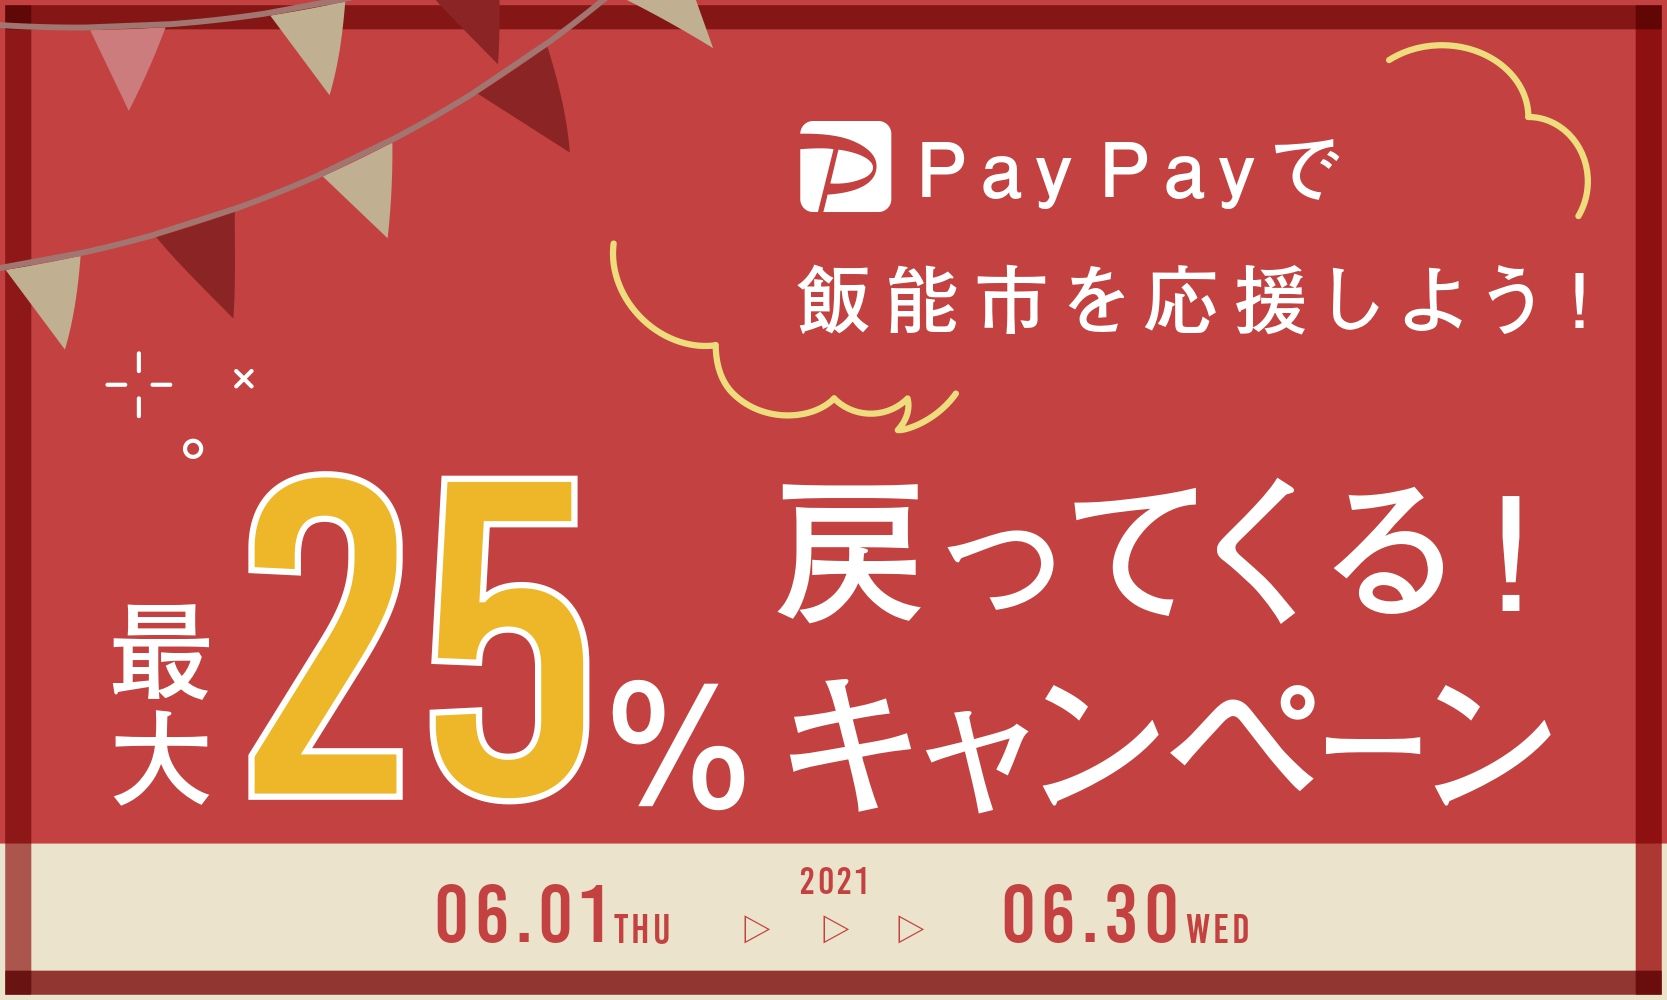 Let's support Hanno City with paypay! 25% back campaign